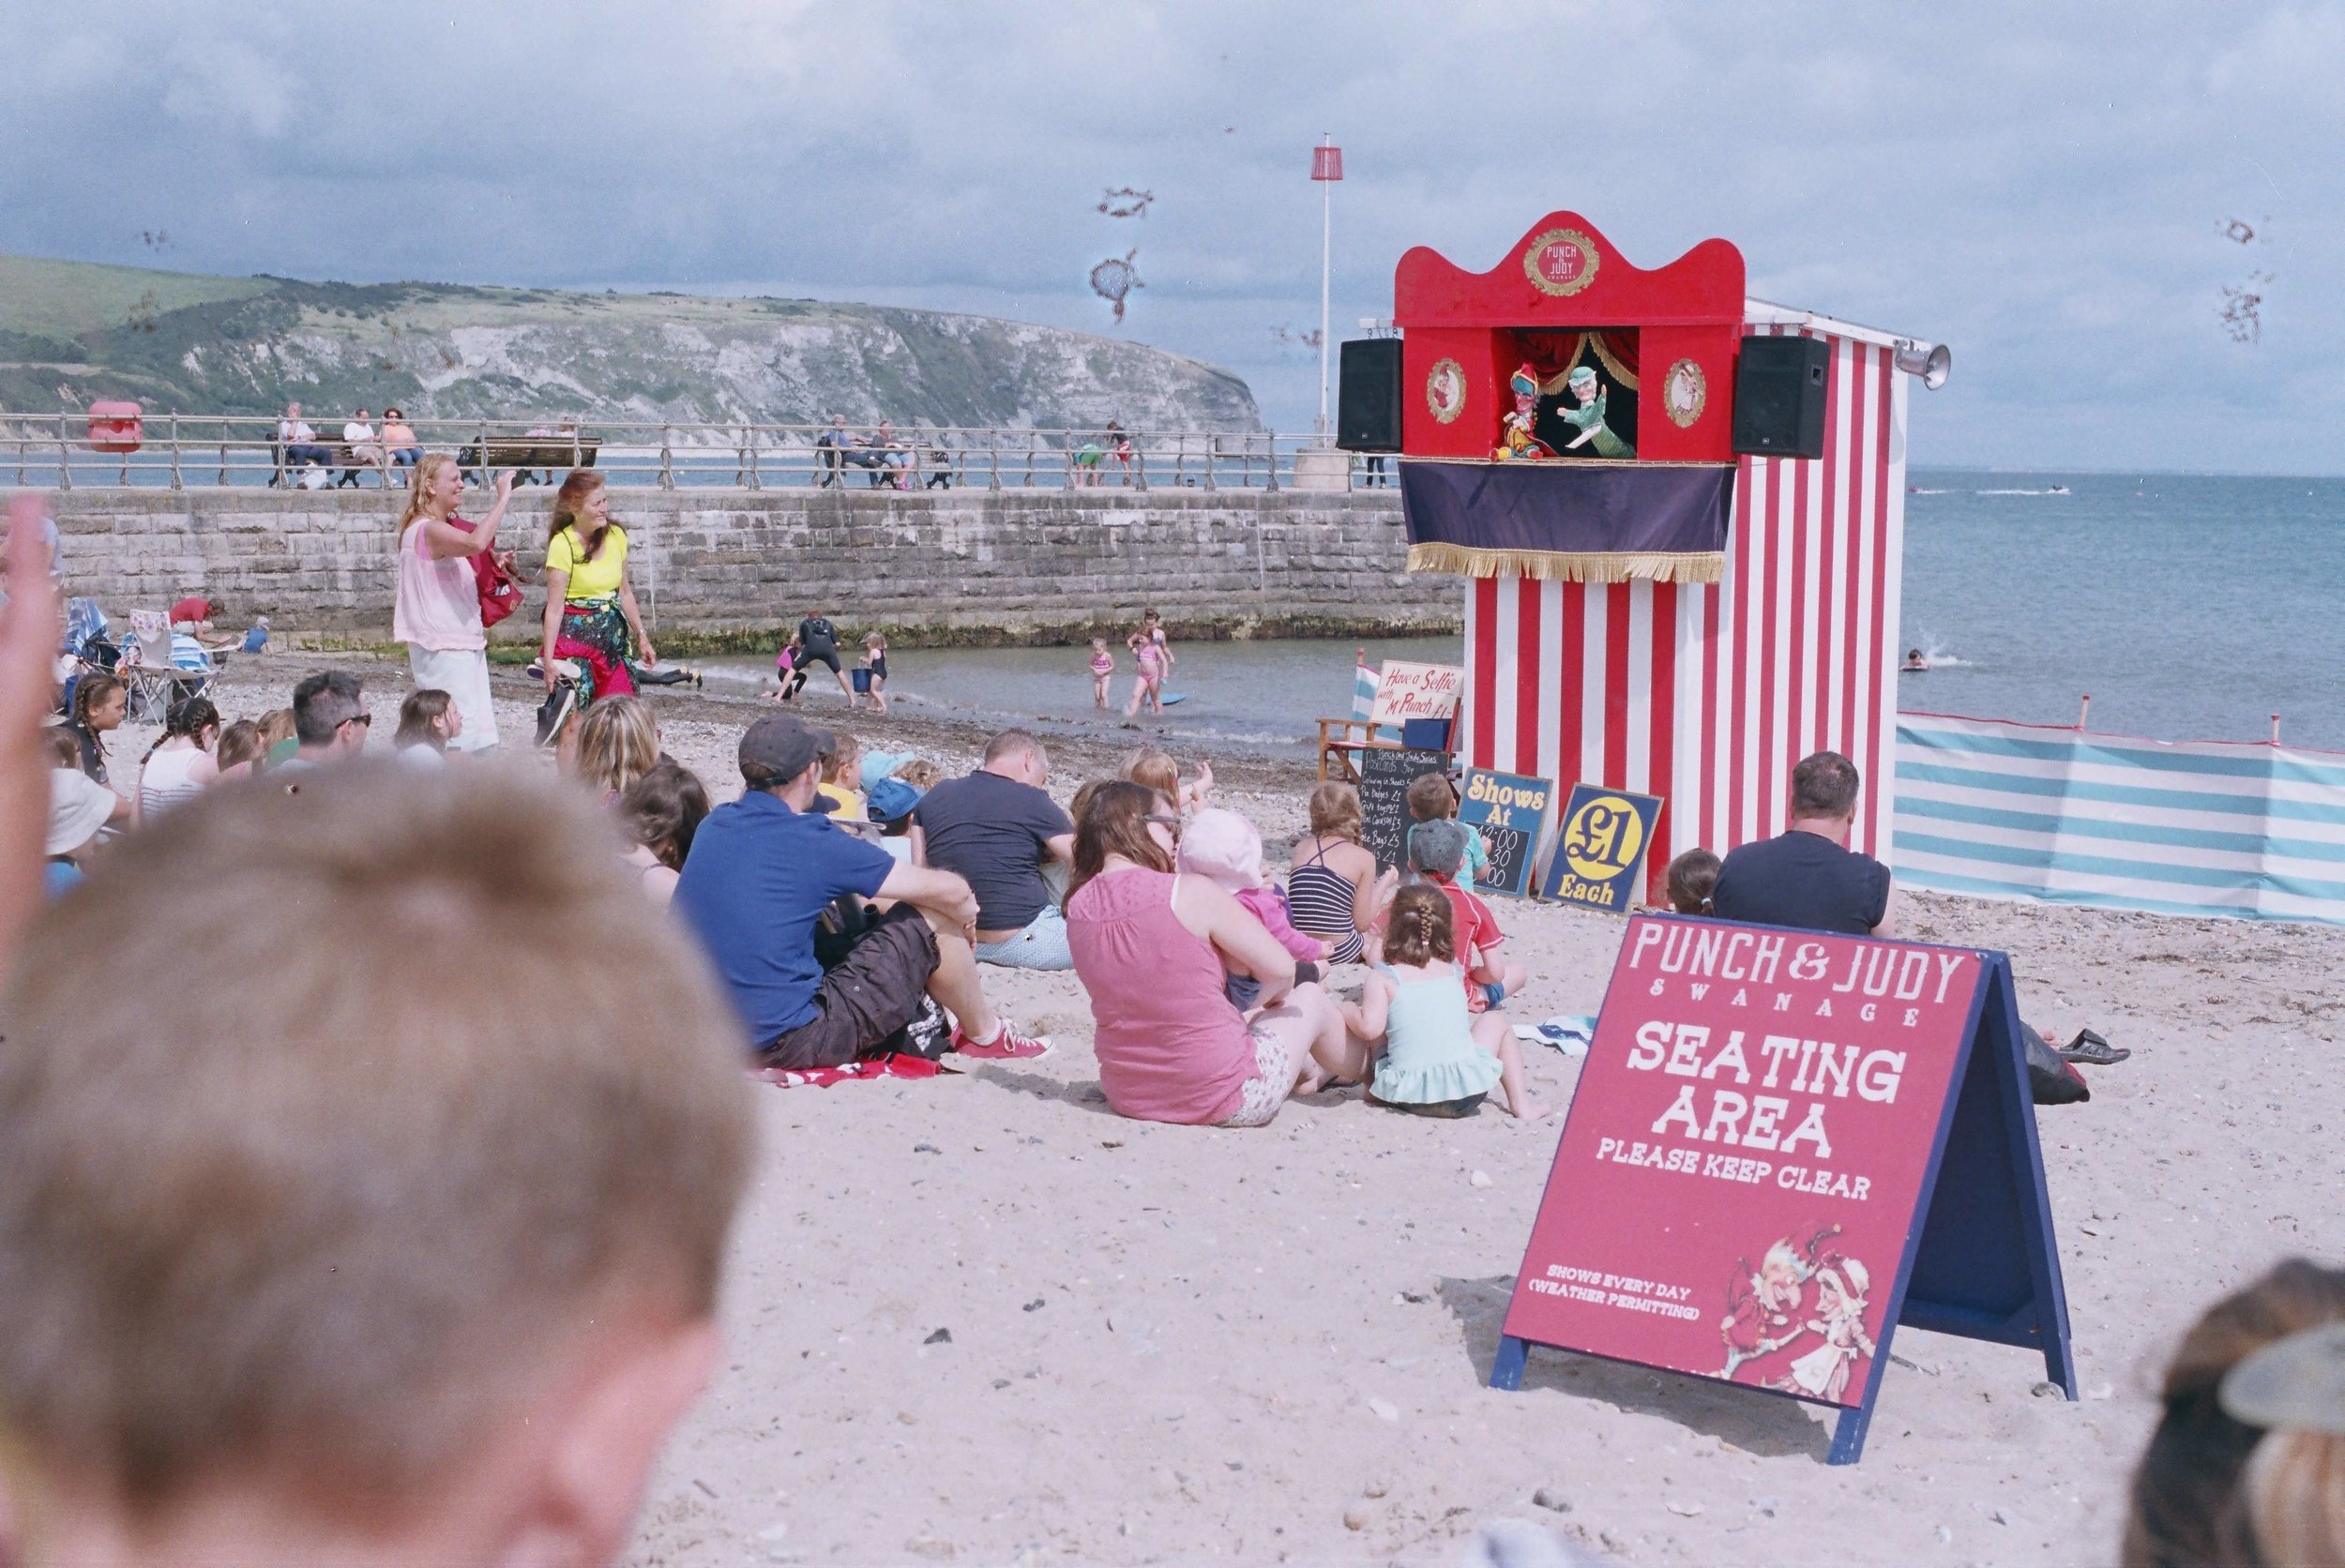 """""""That's the way to do it.."""" - traditional Punch & Judy still performed on Swanage beach"""